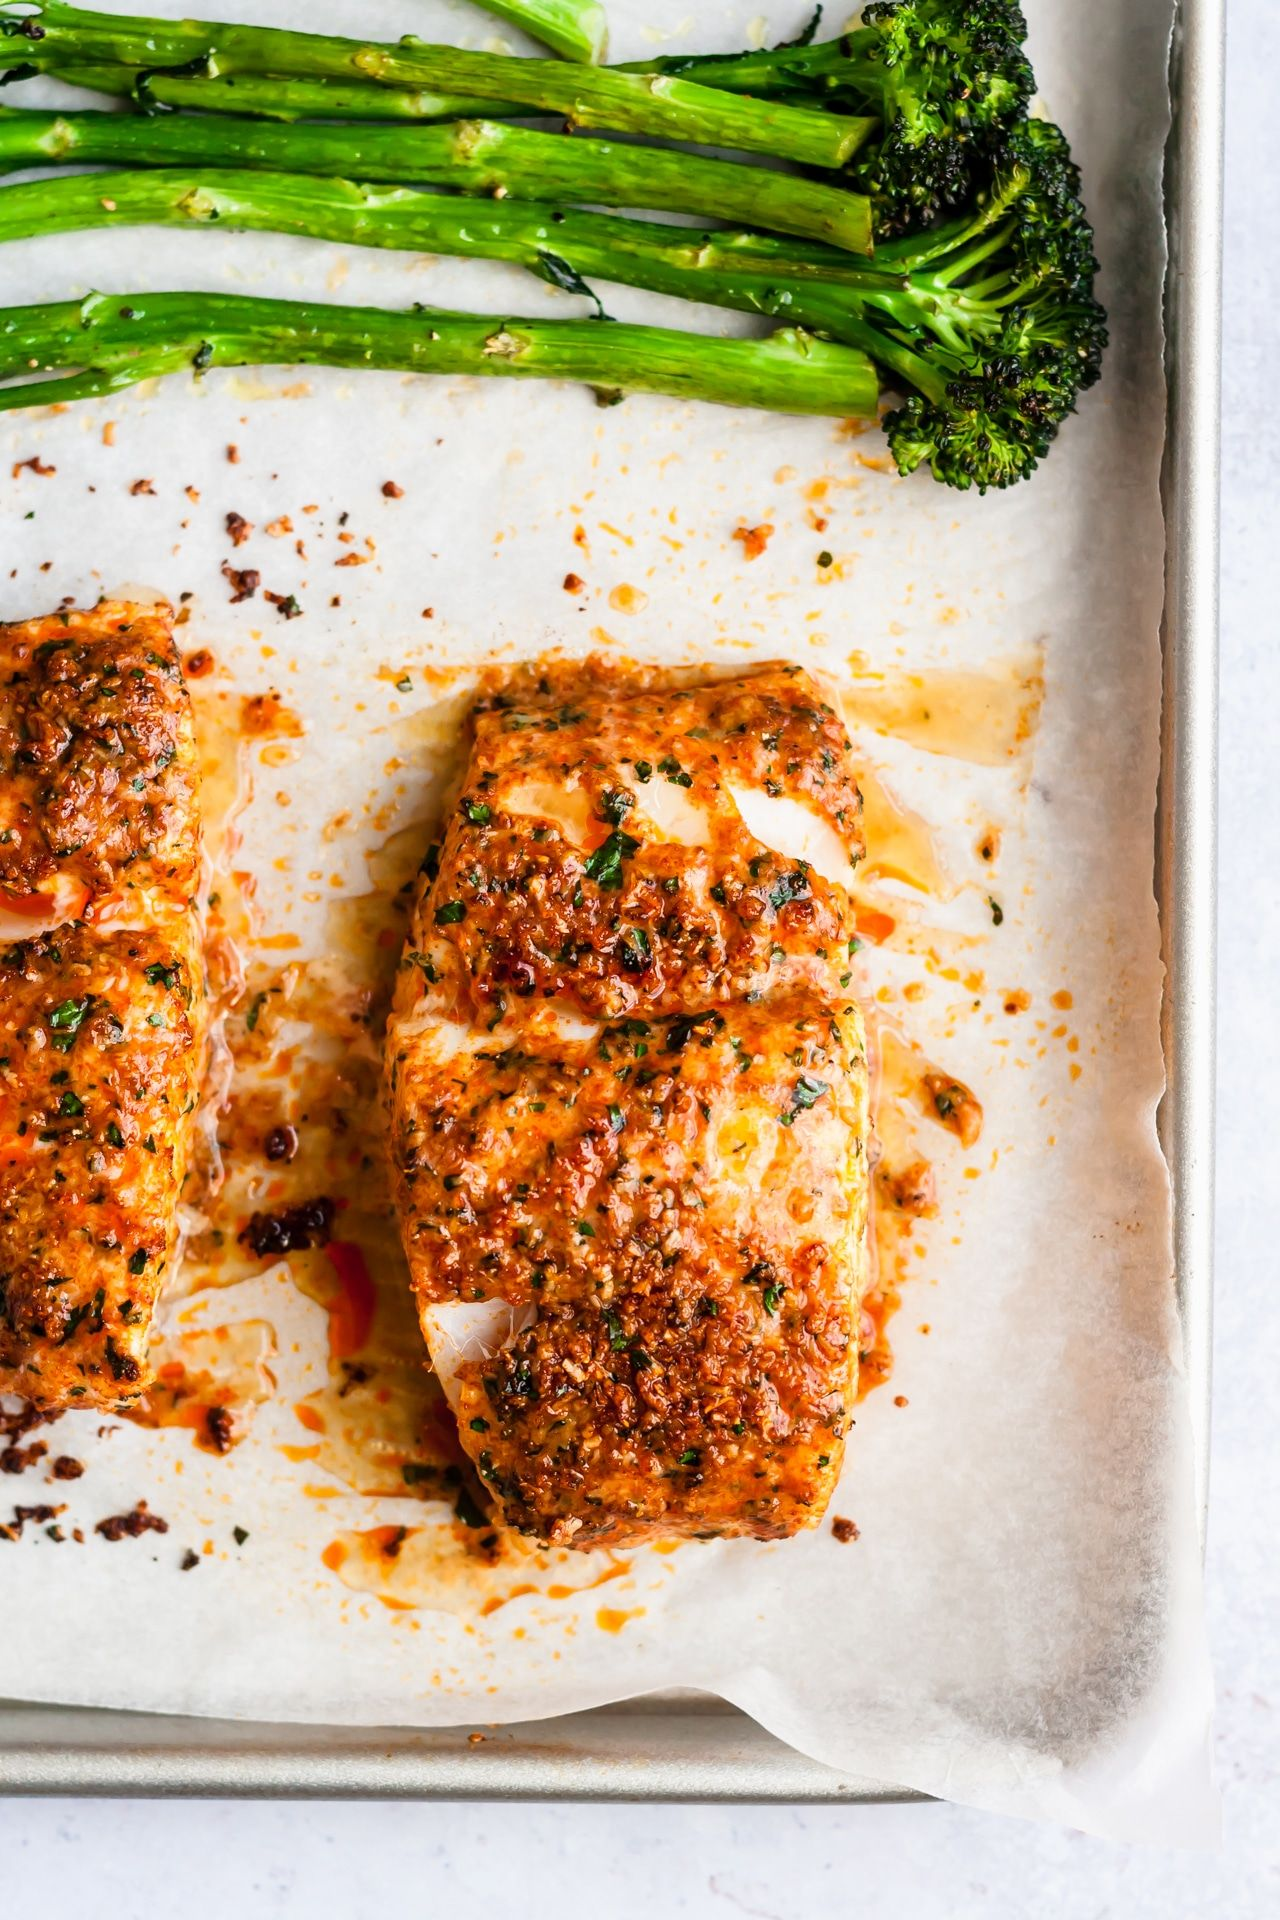 Parmesan Baked Cod An Easy Healthy Delicious Seafood Dinner Recipe Delicious Seafood Dinners Seafood Dinner Cod Fish Recipes